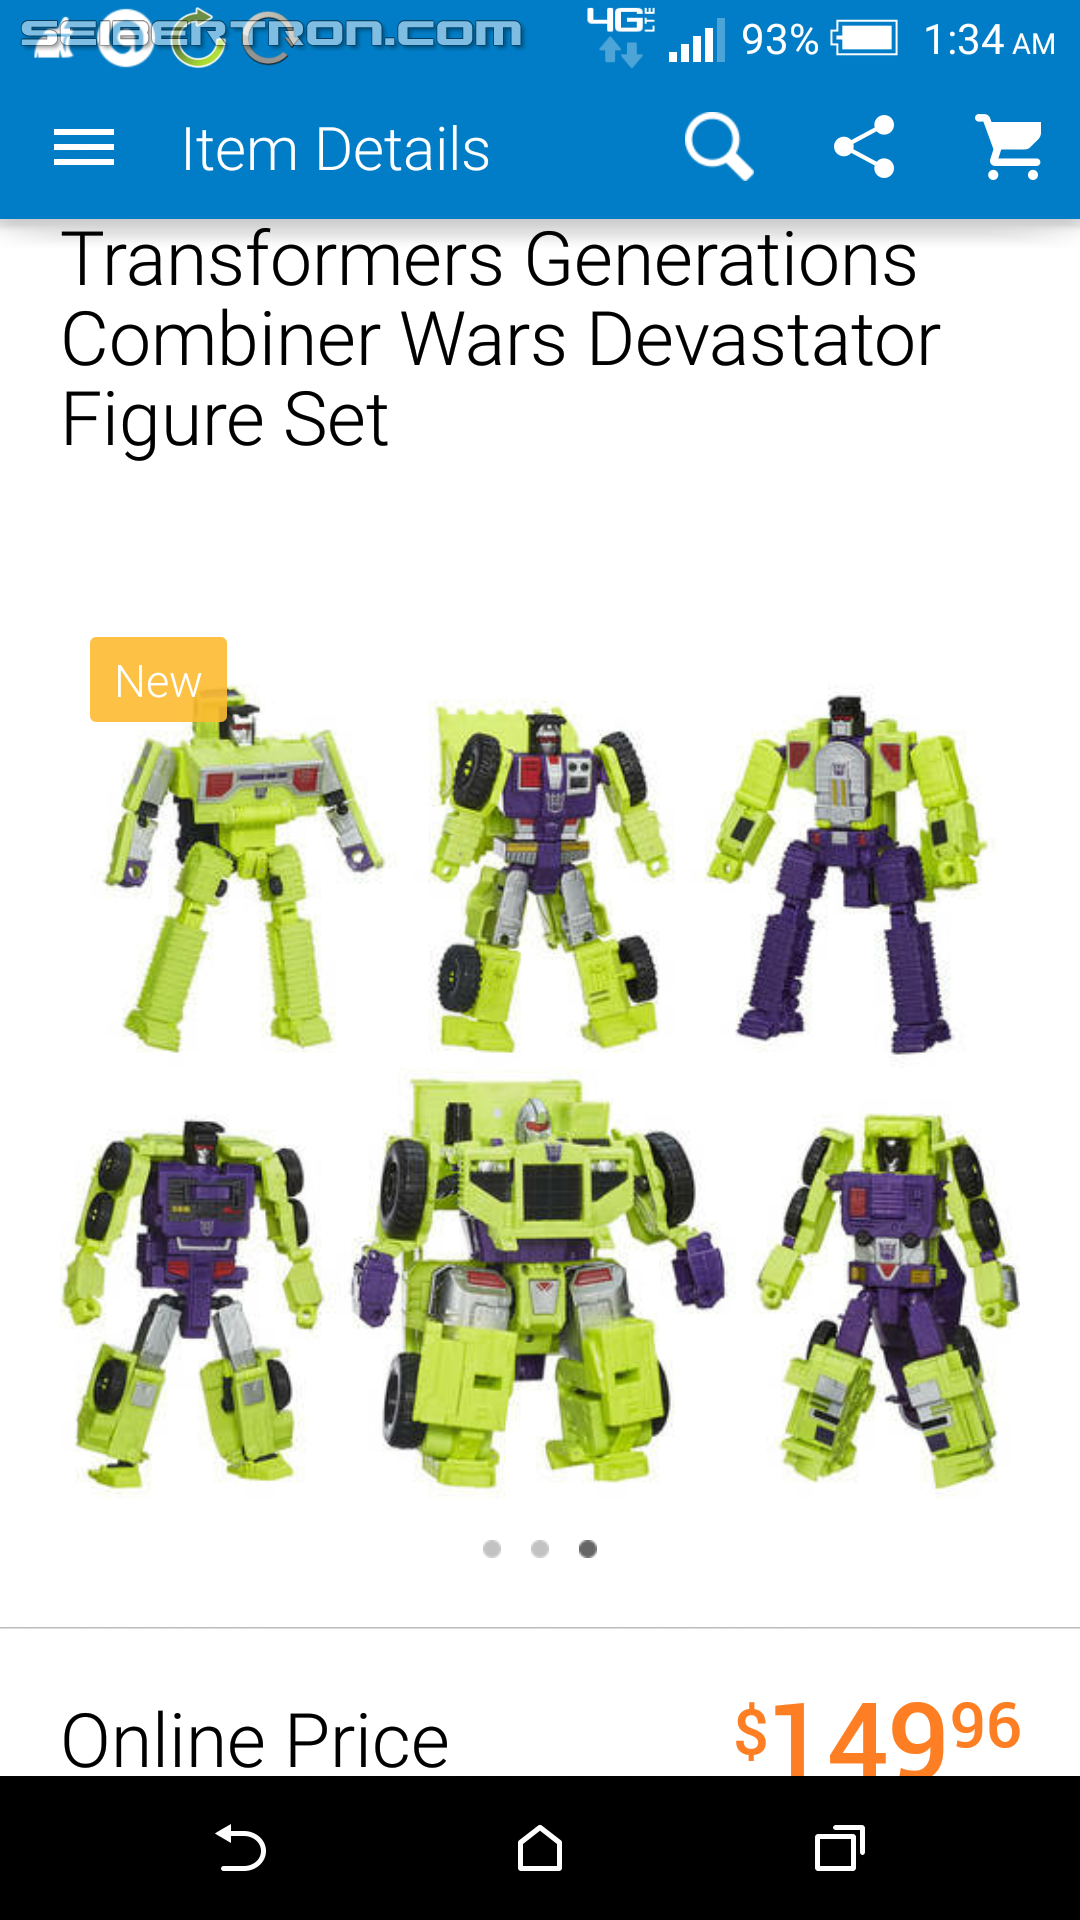 Transformers News: Combiner Wars Devastator Listed On Wal*Mart's Smartphone App, But Not The Website